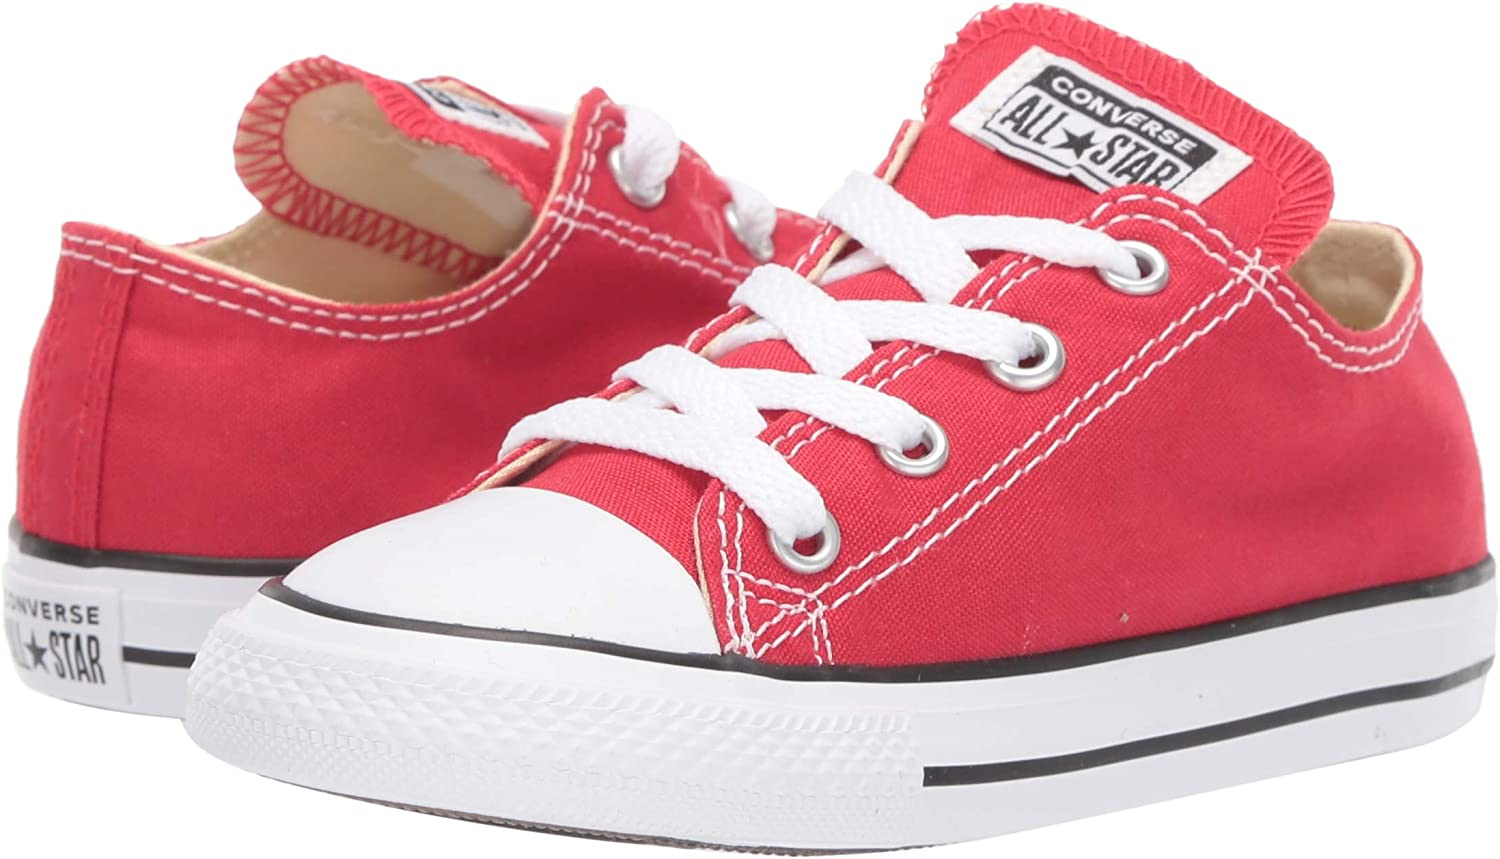 Converse Kids Chuck Taylor All Star Low Top Sneaker